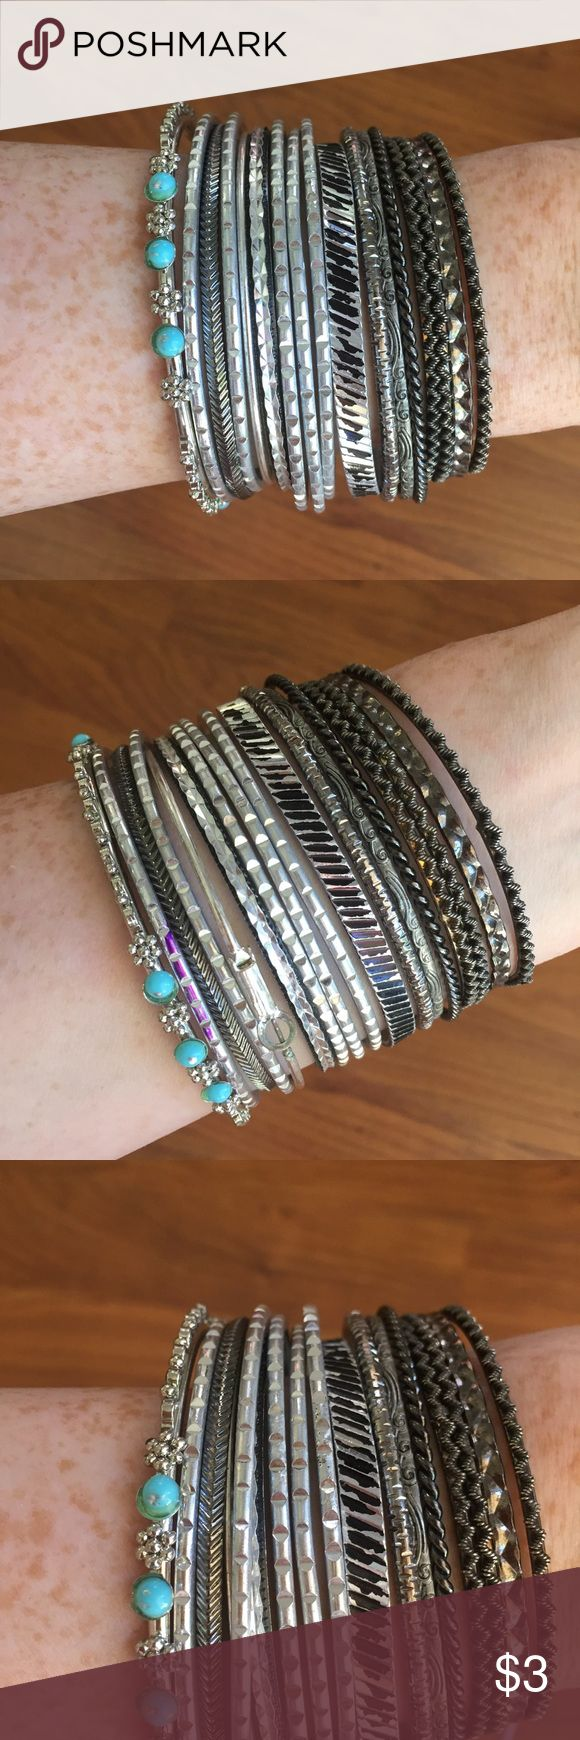 Ornate silver premium boho bangles ✌️ Free with bundle purchase only $15 or more :-) Free People Jewelry Bracelets